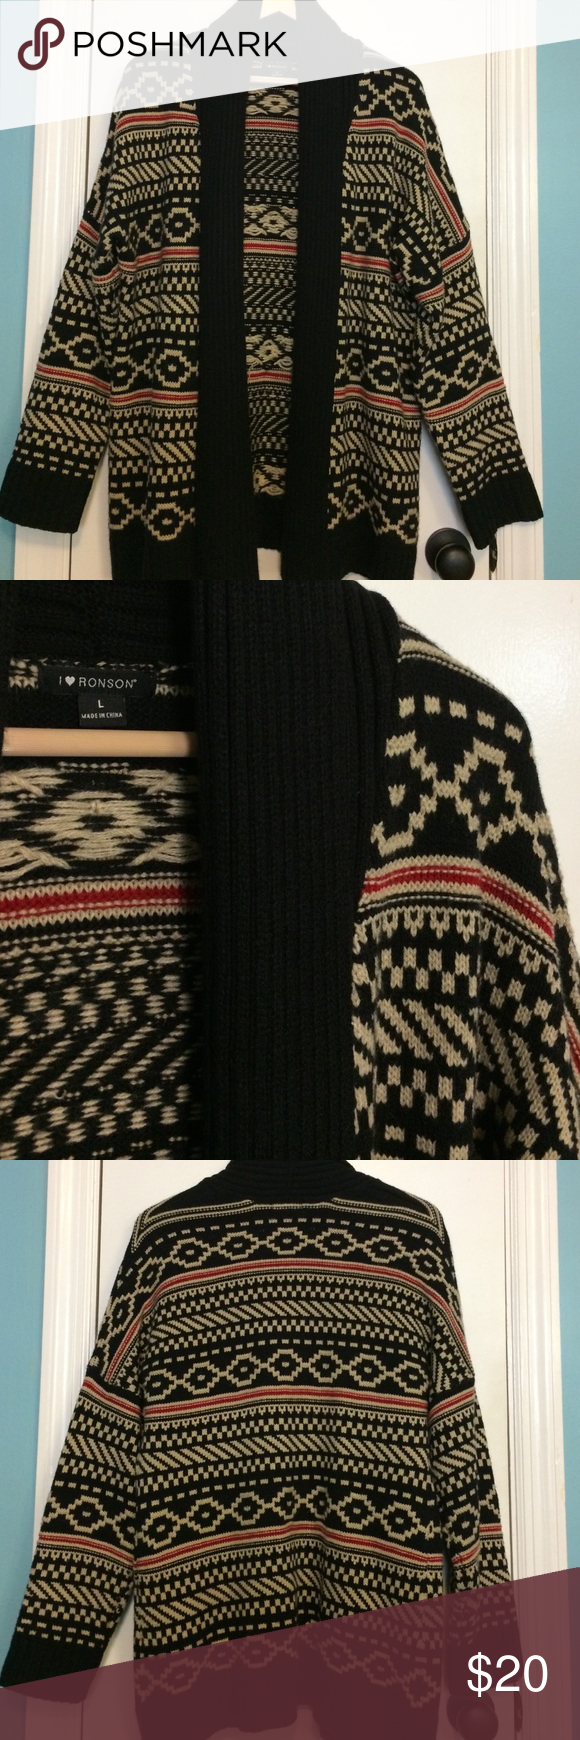 I ❤️ Ronson Aztec Cardigan Very nice, only worn a few times. Shades of black, tan and red. Has open front with shawl collar. Very soft and warm. Measures 30 inches long and 23 inches from armpit to armpit. No rips, tears or stains. 100% acrylic. I ❤️ Ronson Sweaters Cardigans